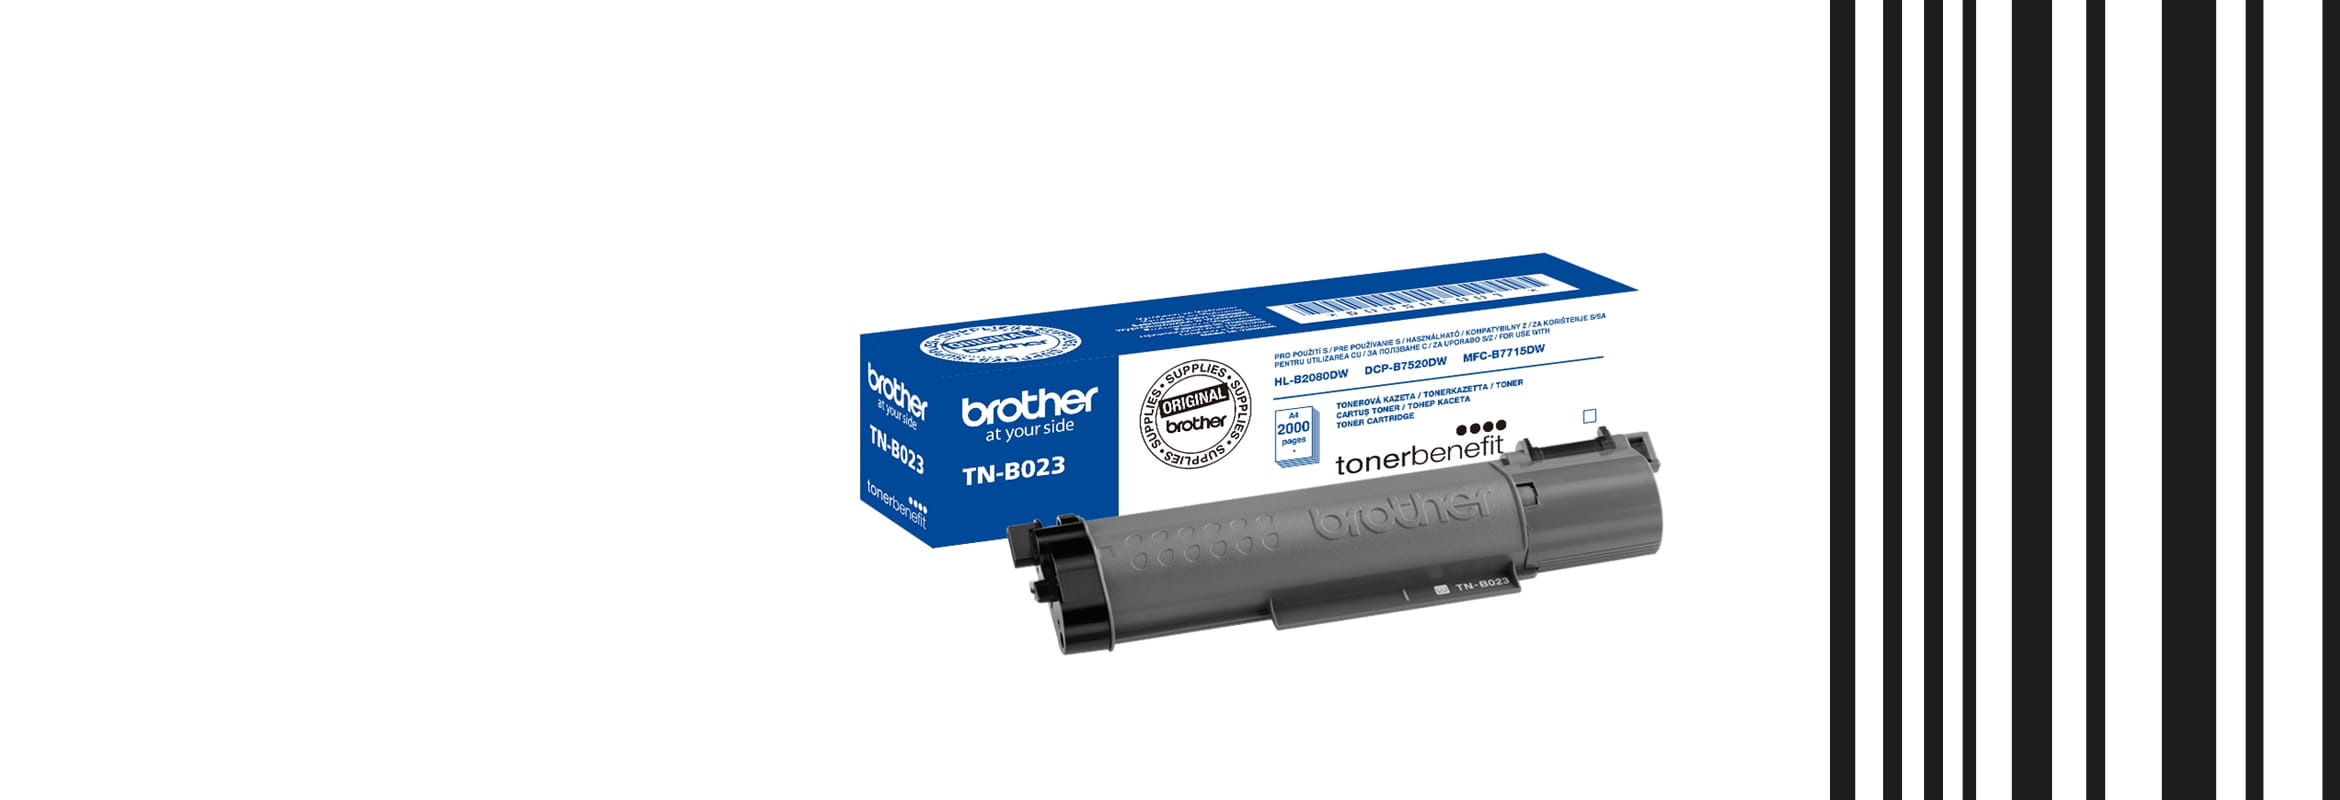 Toner box for TN-B023 with barcode